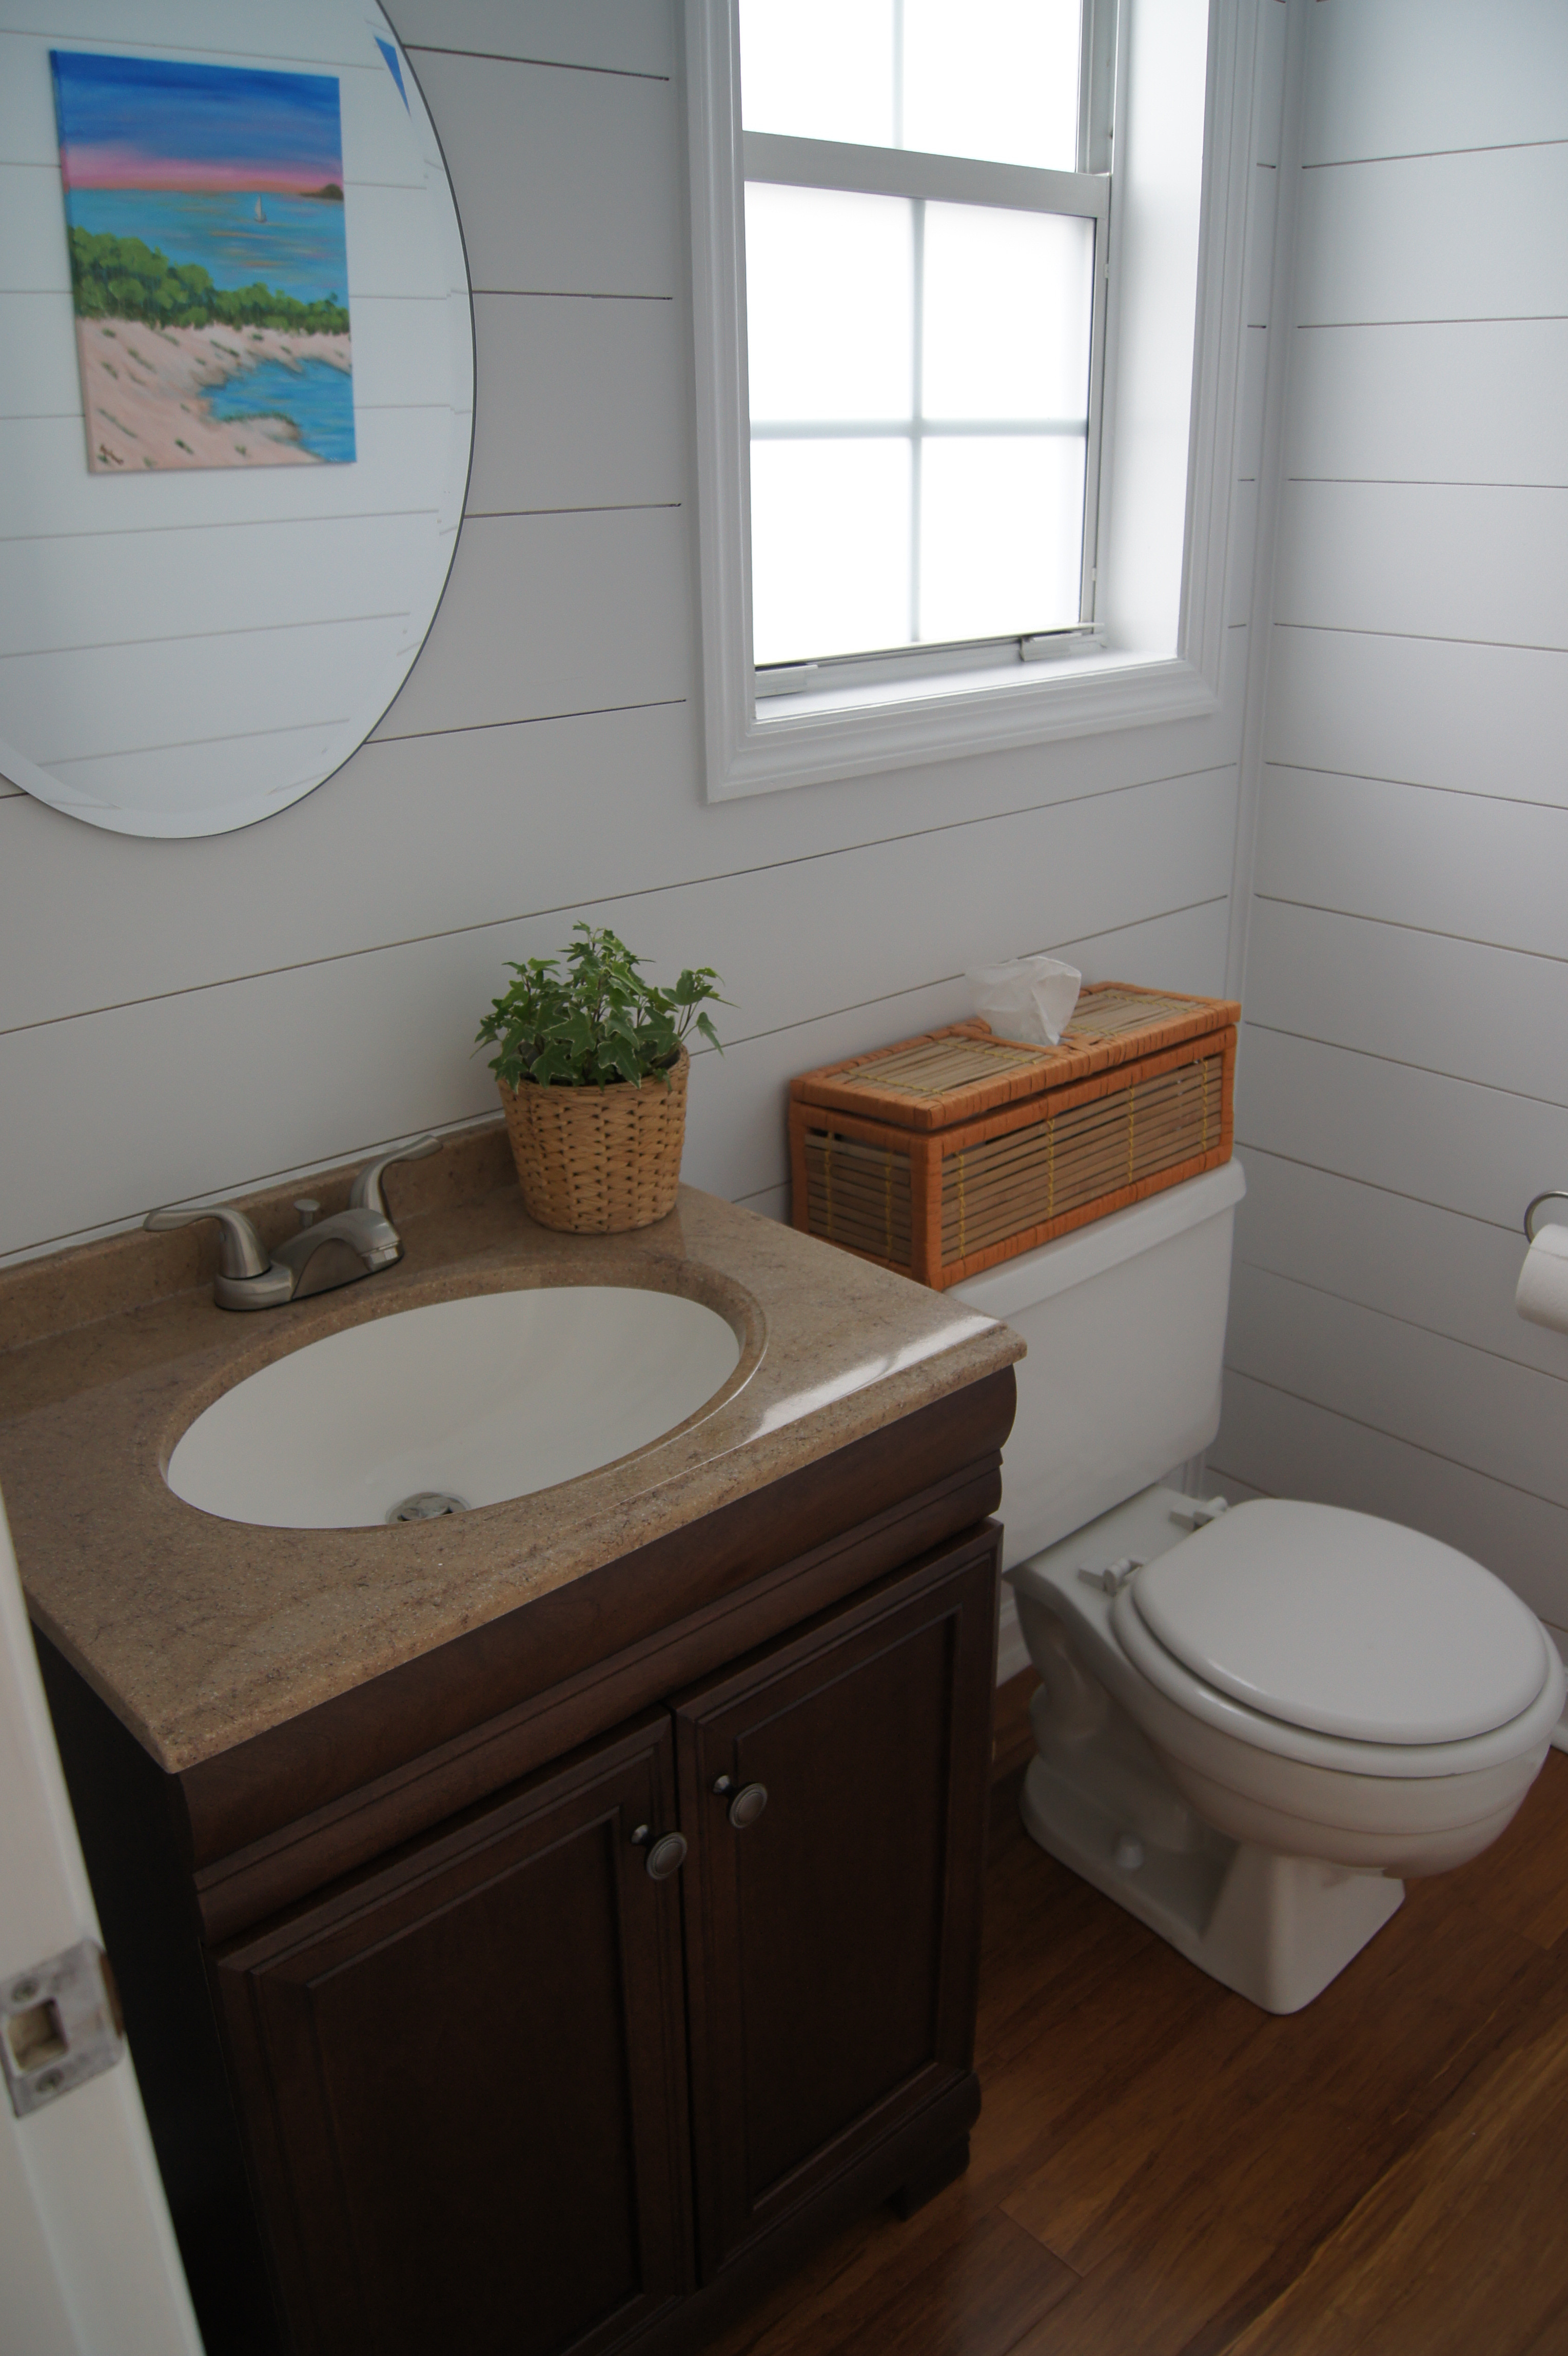 gaps in hardwood floor after installation of shiplap vs nickel gap making your budget work for you hams at home throughout we think the nickel gap really gave the room great character besides our kitchen the walls in the powder room got the most attention from friends family